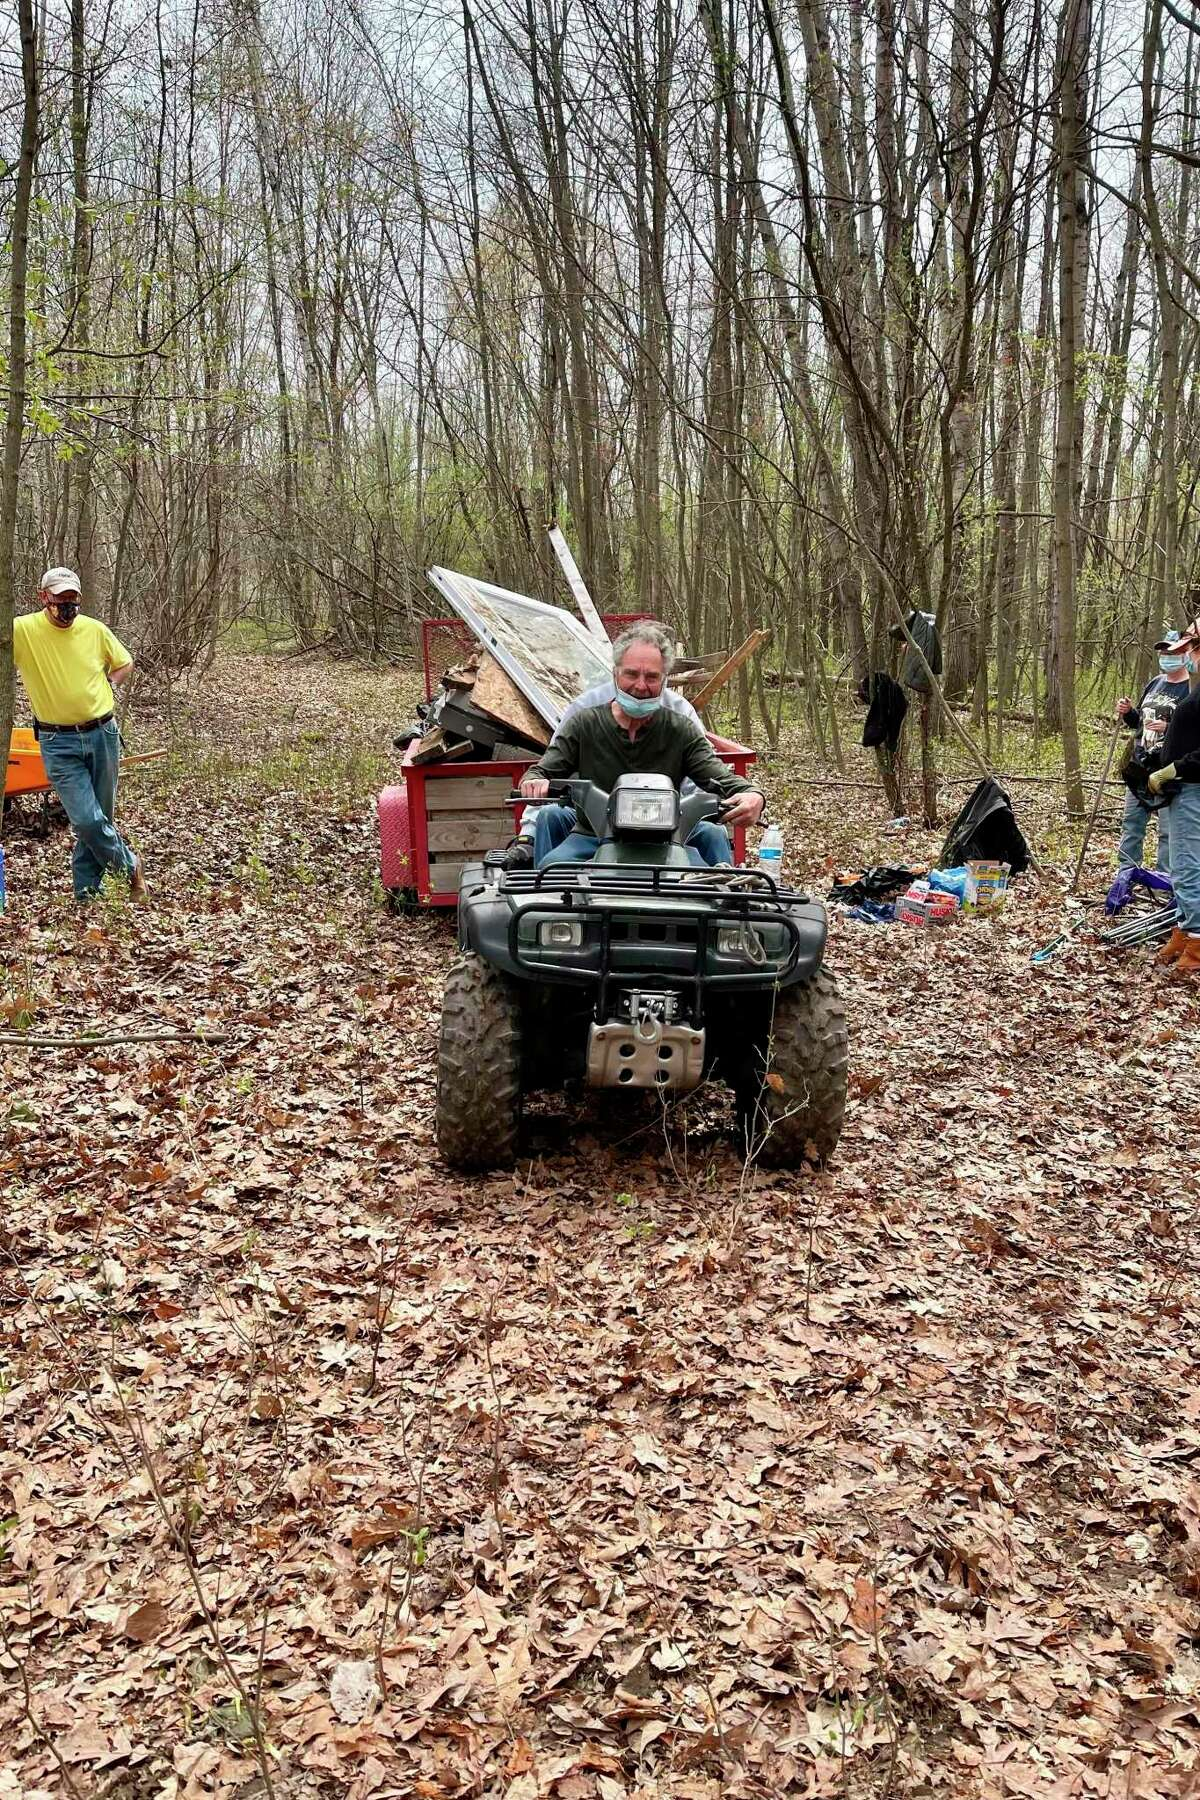 Though this Sanford property is privately owned, Little Forks Conservancy holds a conservation easement and helped facilitate the day of cleanup with the property owner. (Photo provided)